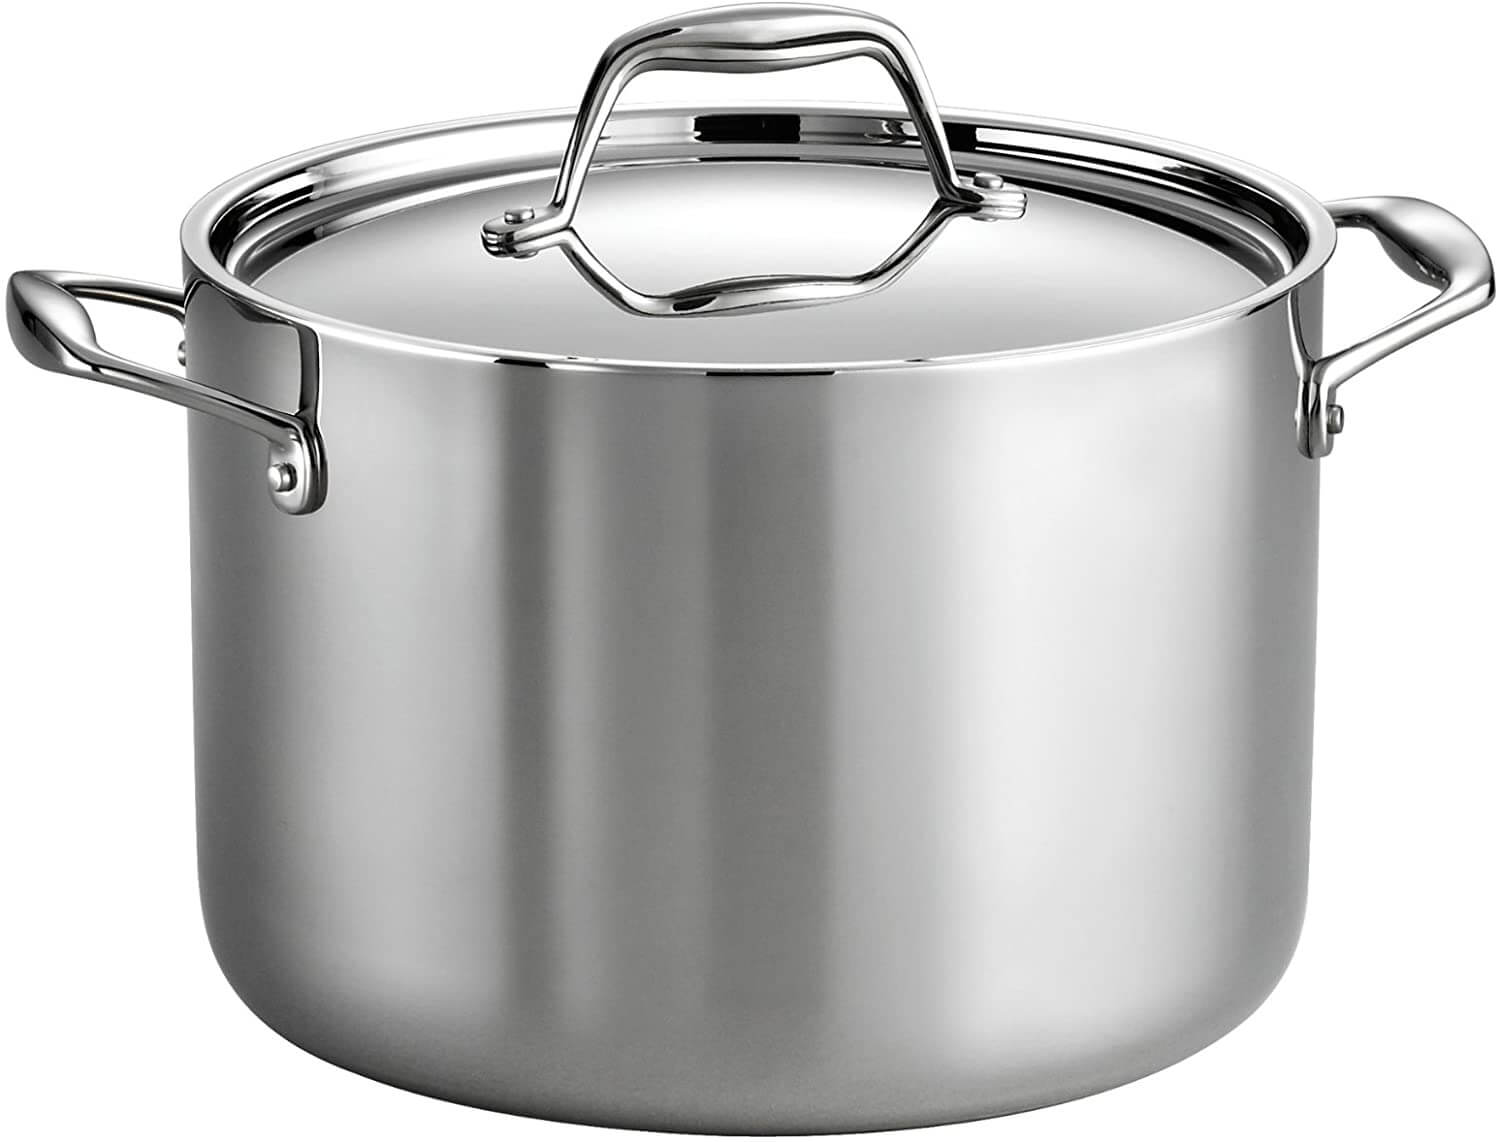 Tramontina 80116 041DS Gourmet Stainless Steel Stock Pot